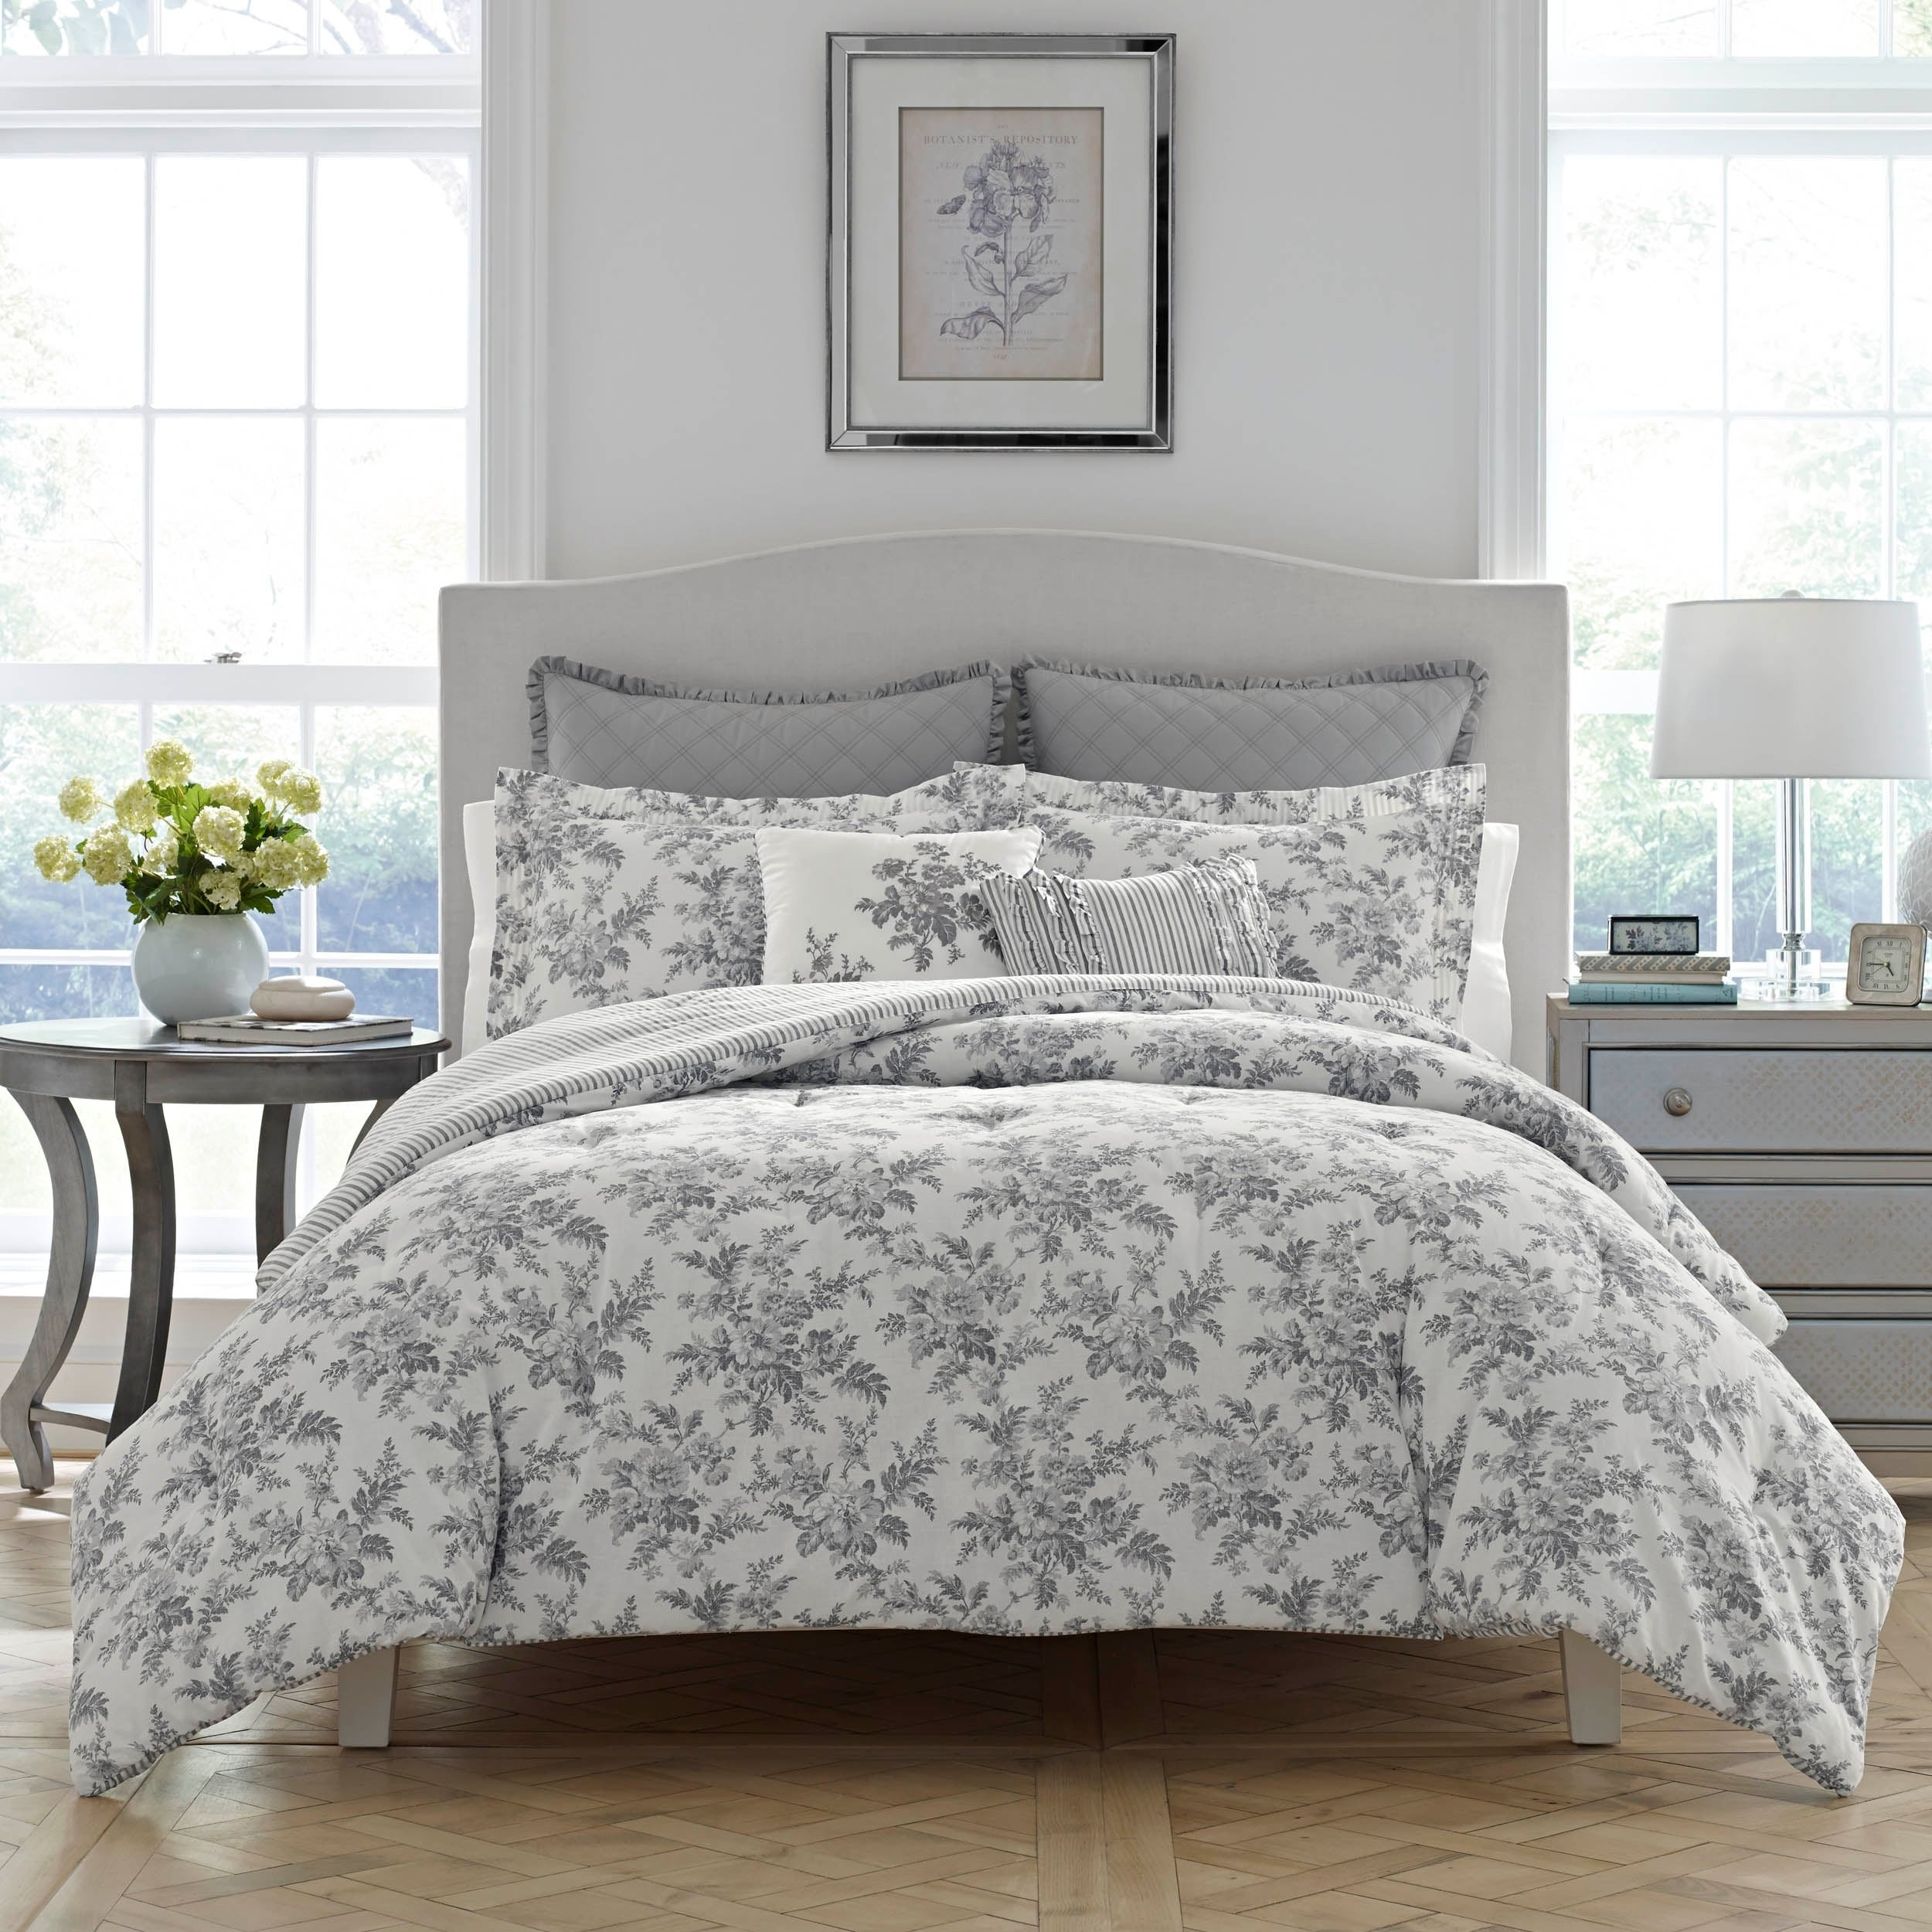 Laura Ashley Annalise Fl Duvet Cover Set On Free Shipping Today 22827985